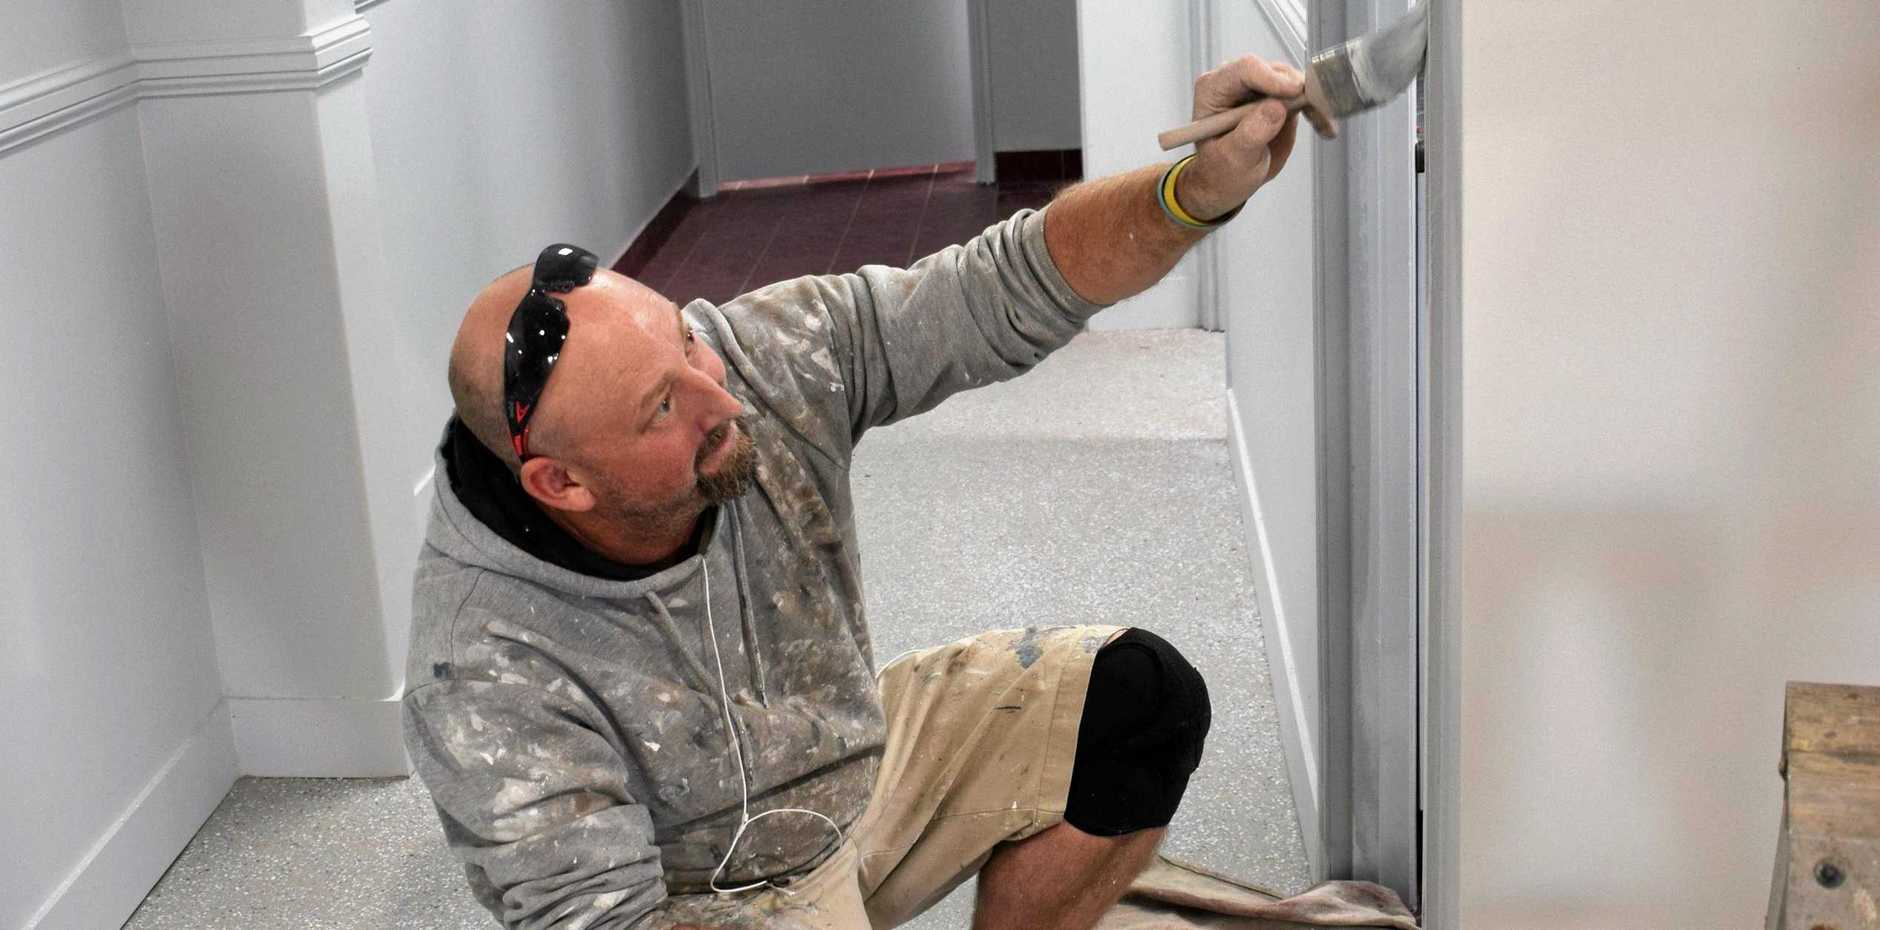 Painter Paul Olsen from Tony Hehir Painting puts the finishing touches on some of the office space in the new building.